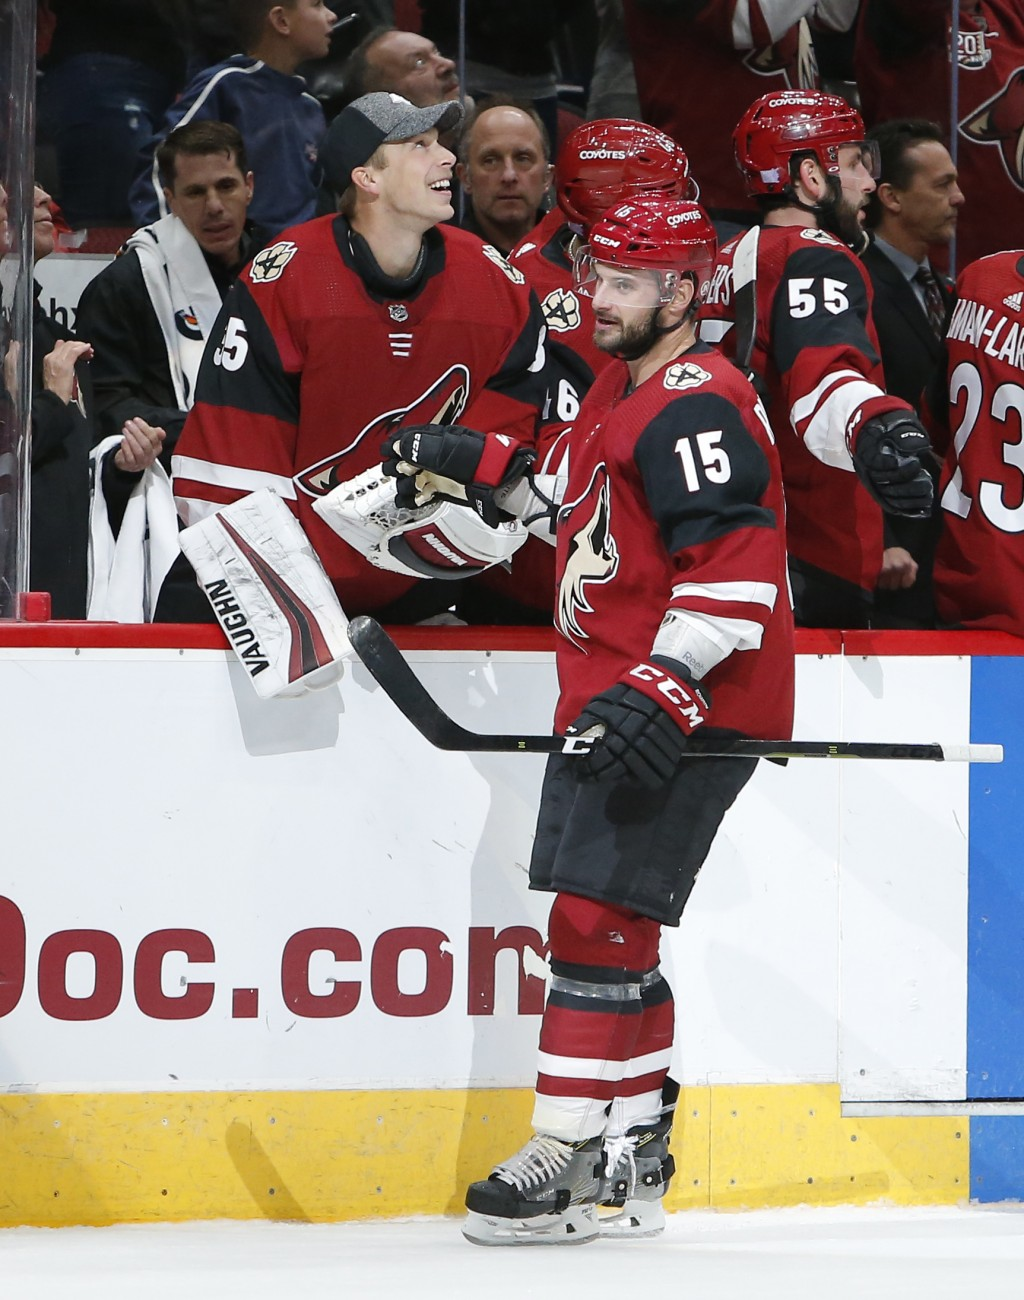 Arizona Coyotes center Brad Richardson (15) celebrates with teammates after scoring a goal against the Carolina Hurricanes during the first period of ...